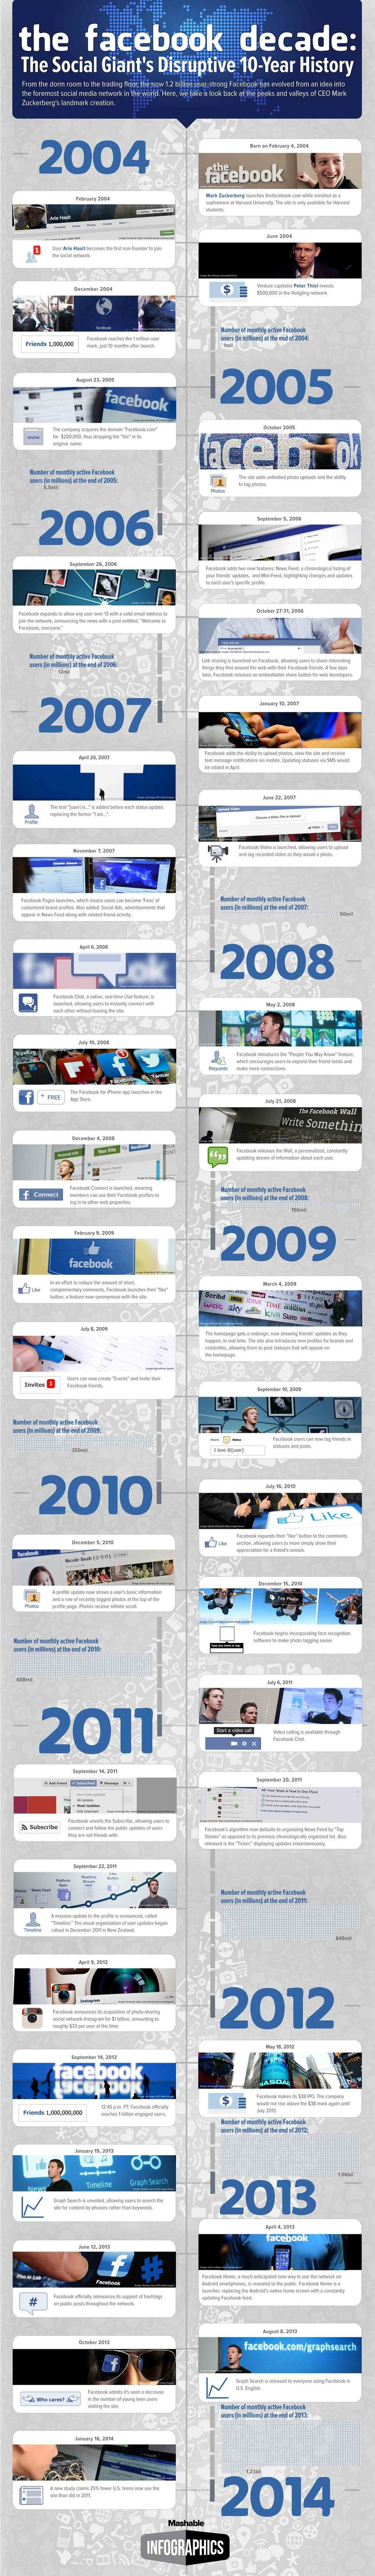 The Facebook Decade: A Review of the Social Giant's Disruptive History [INFOGRAPHIC]Social Network, Happy 10Th, 10Th Birthday, Social Media, 10 Years, Infographic, Facebook Marketing, Facebook Decadent, Socialmedia